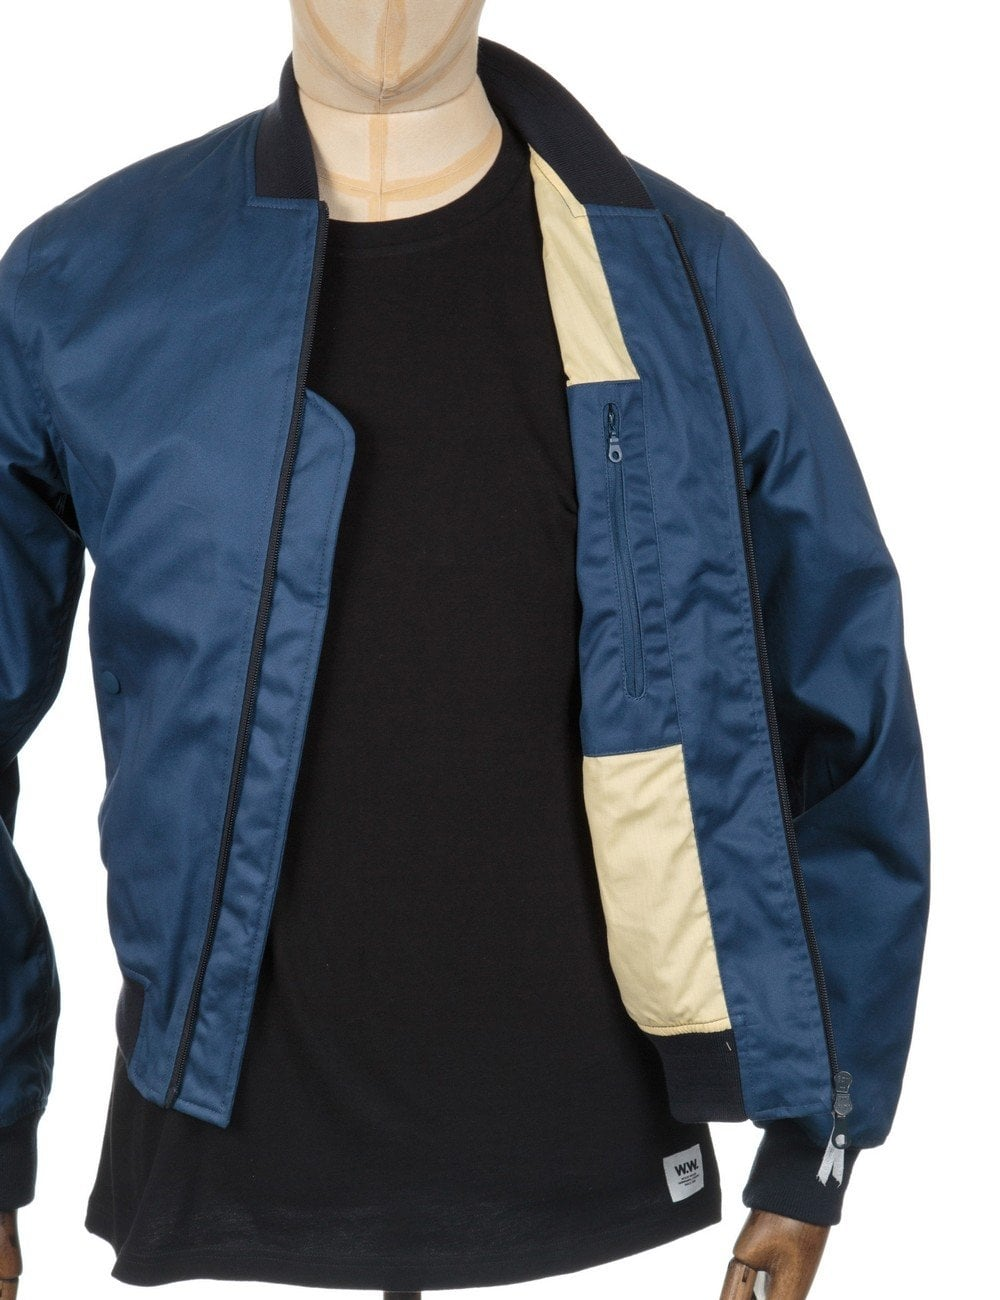 Nike jacket in philippines